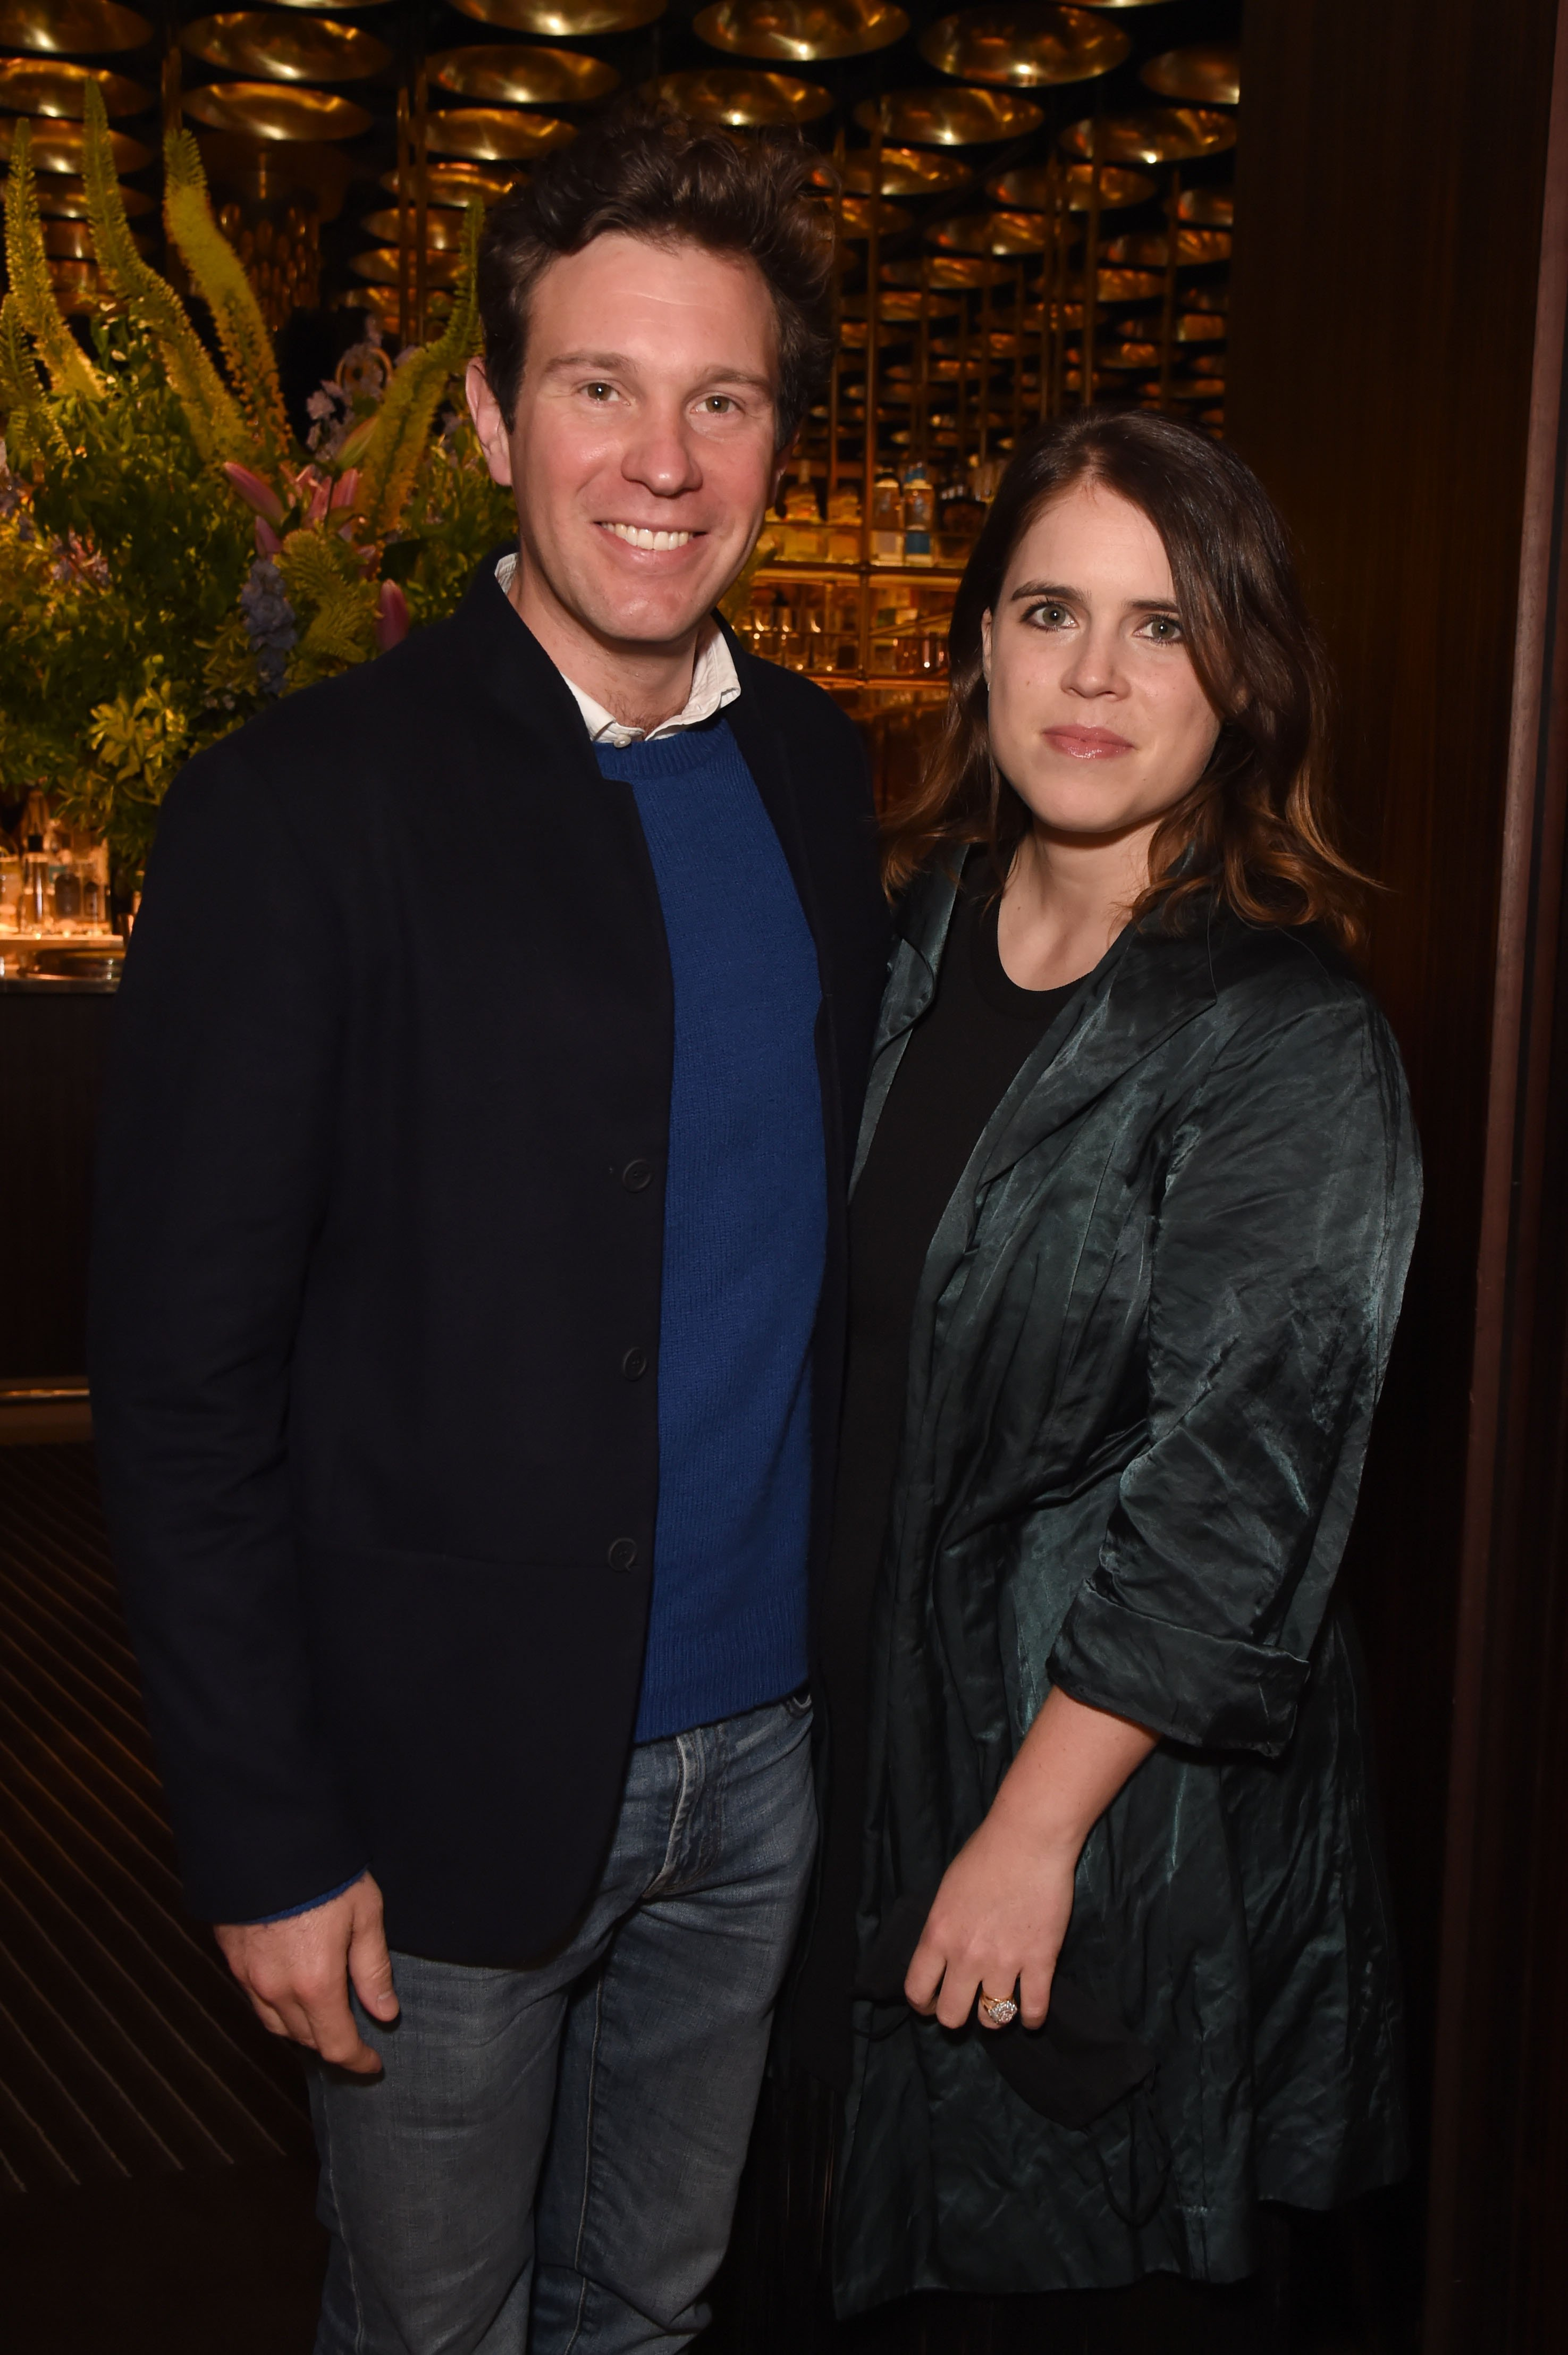 """Jack Brooksbank and Princess Eugenie at the launch of Poppy Jamie's new book """"Happy Not Perfect"""" at Isabel on June 22, 2021 in London, England. 